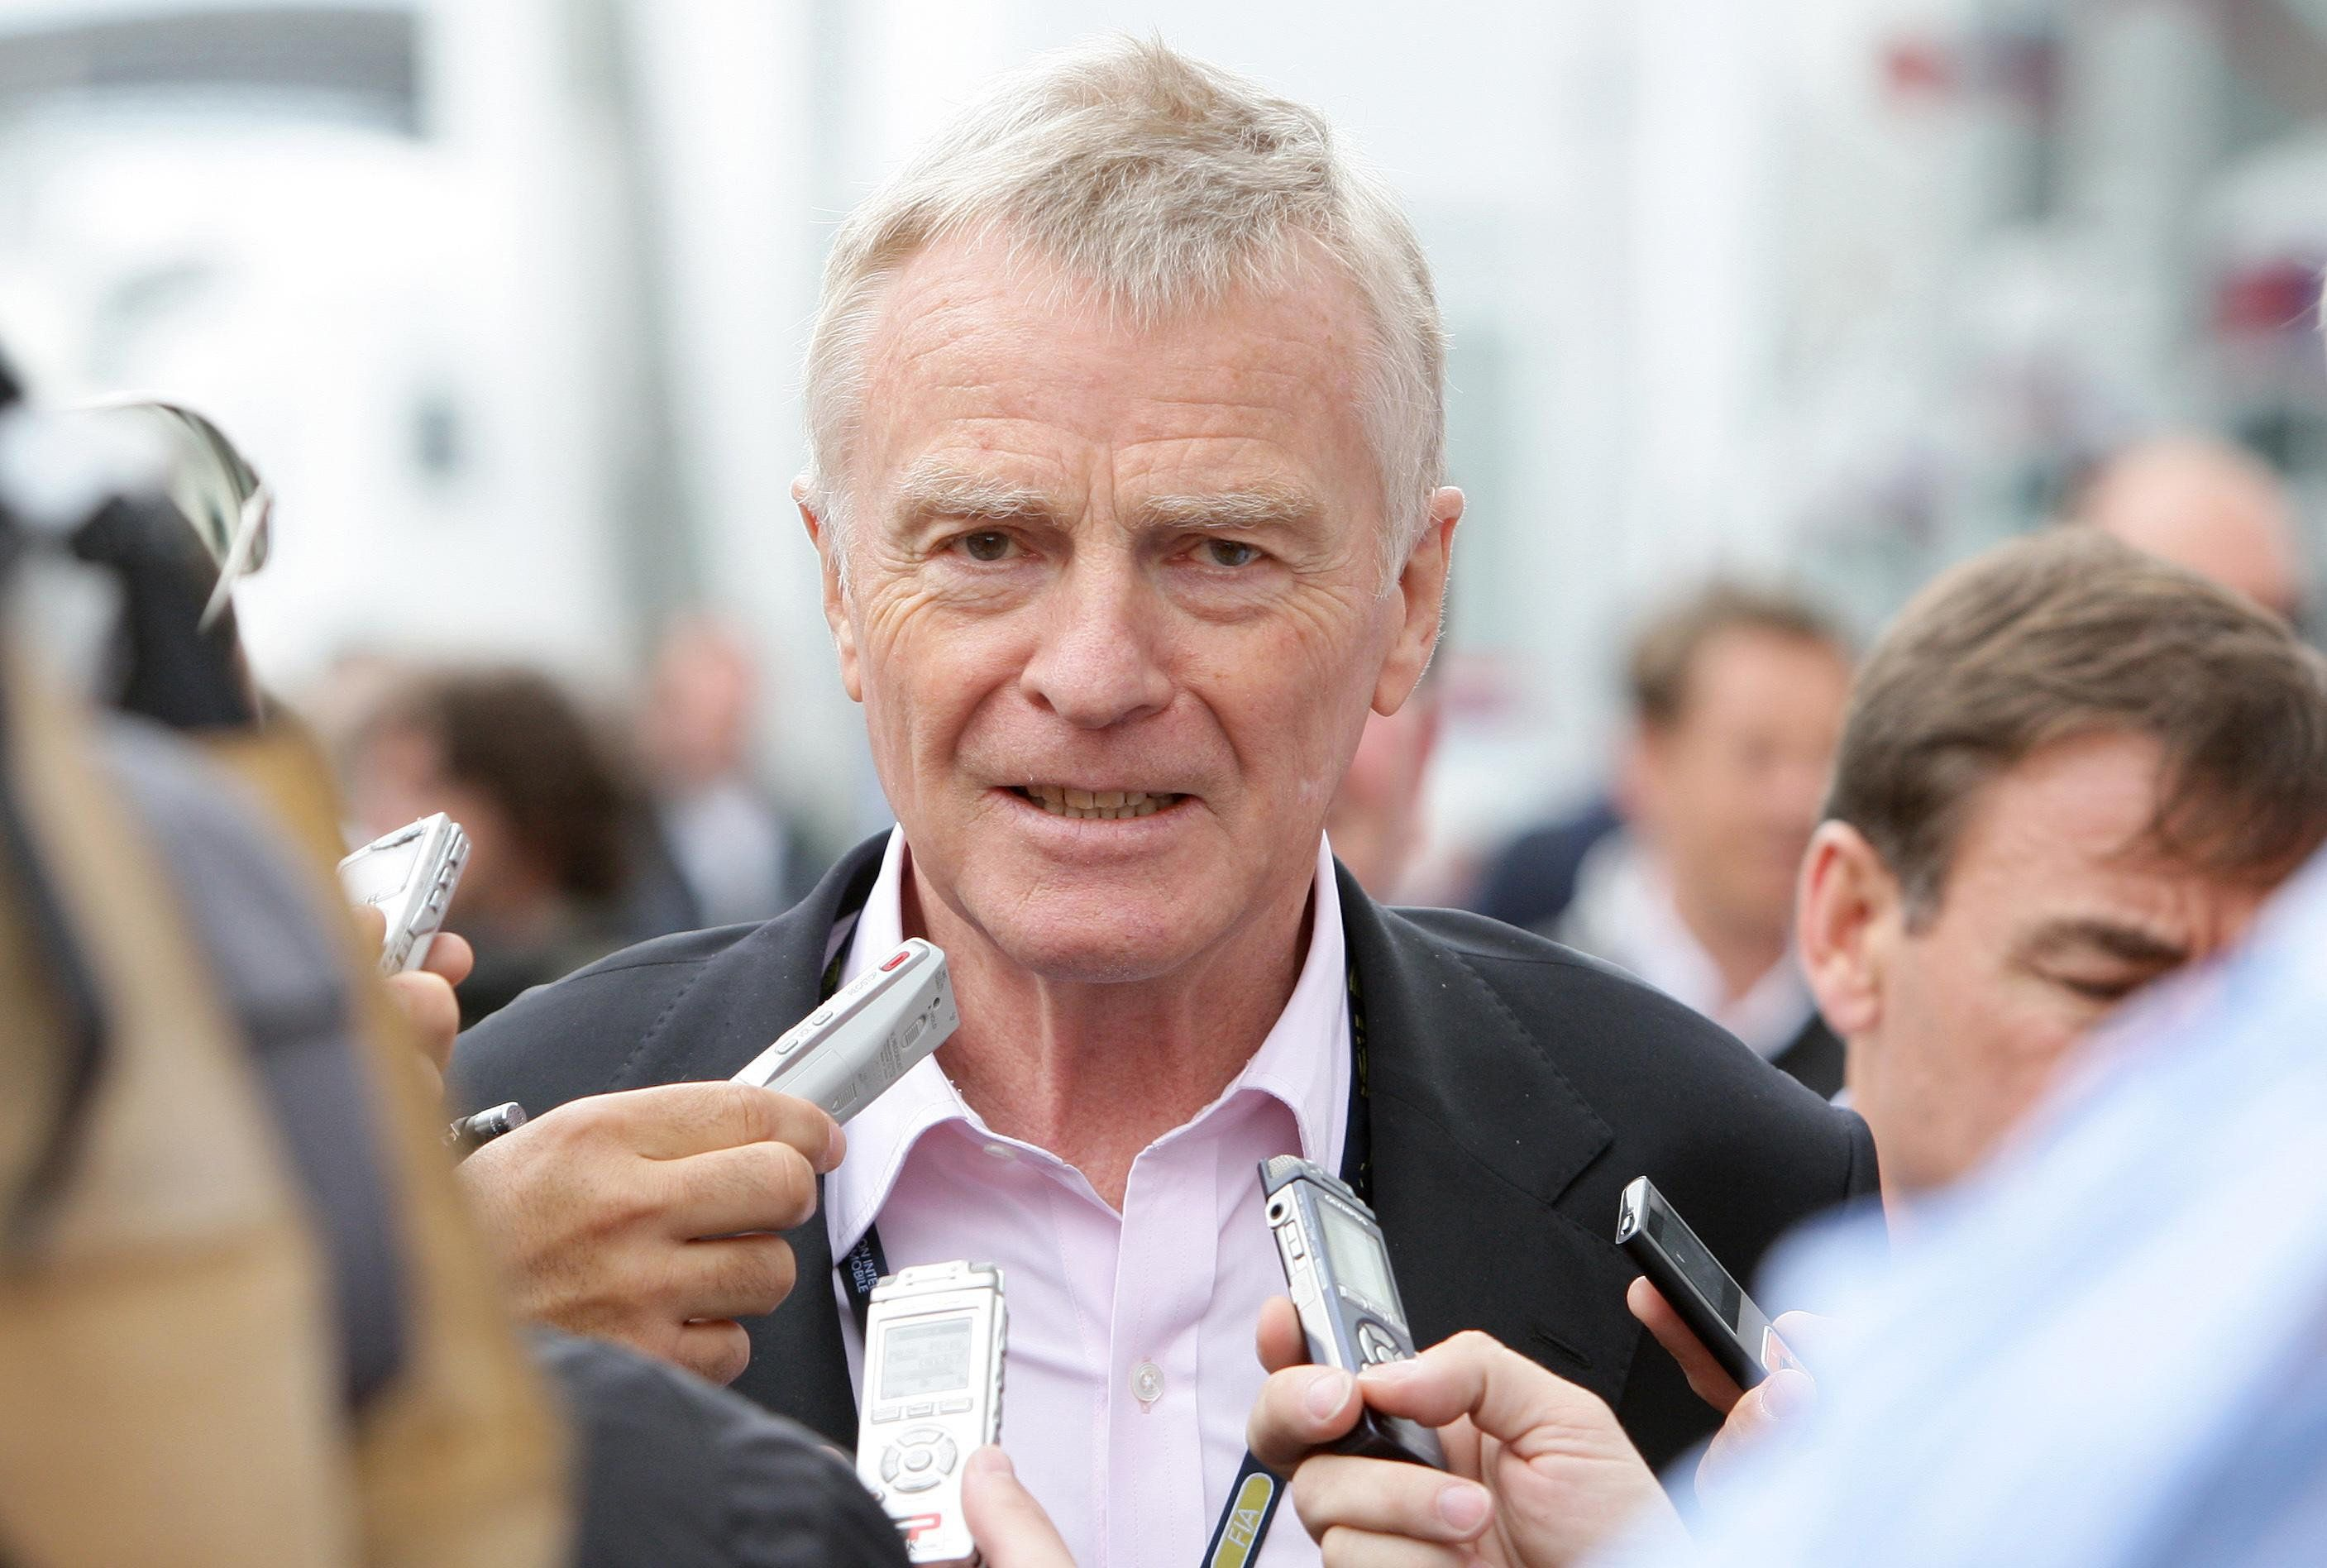 Labour says it will stop accepting donations from Max Mosley